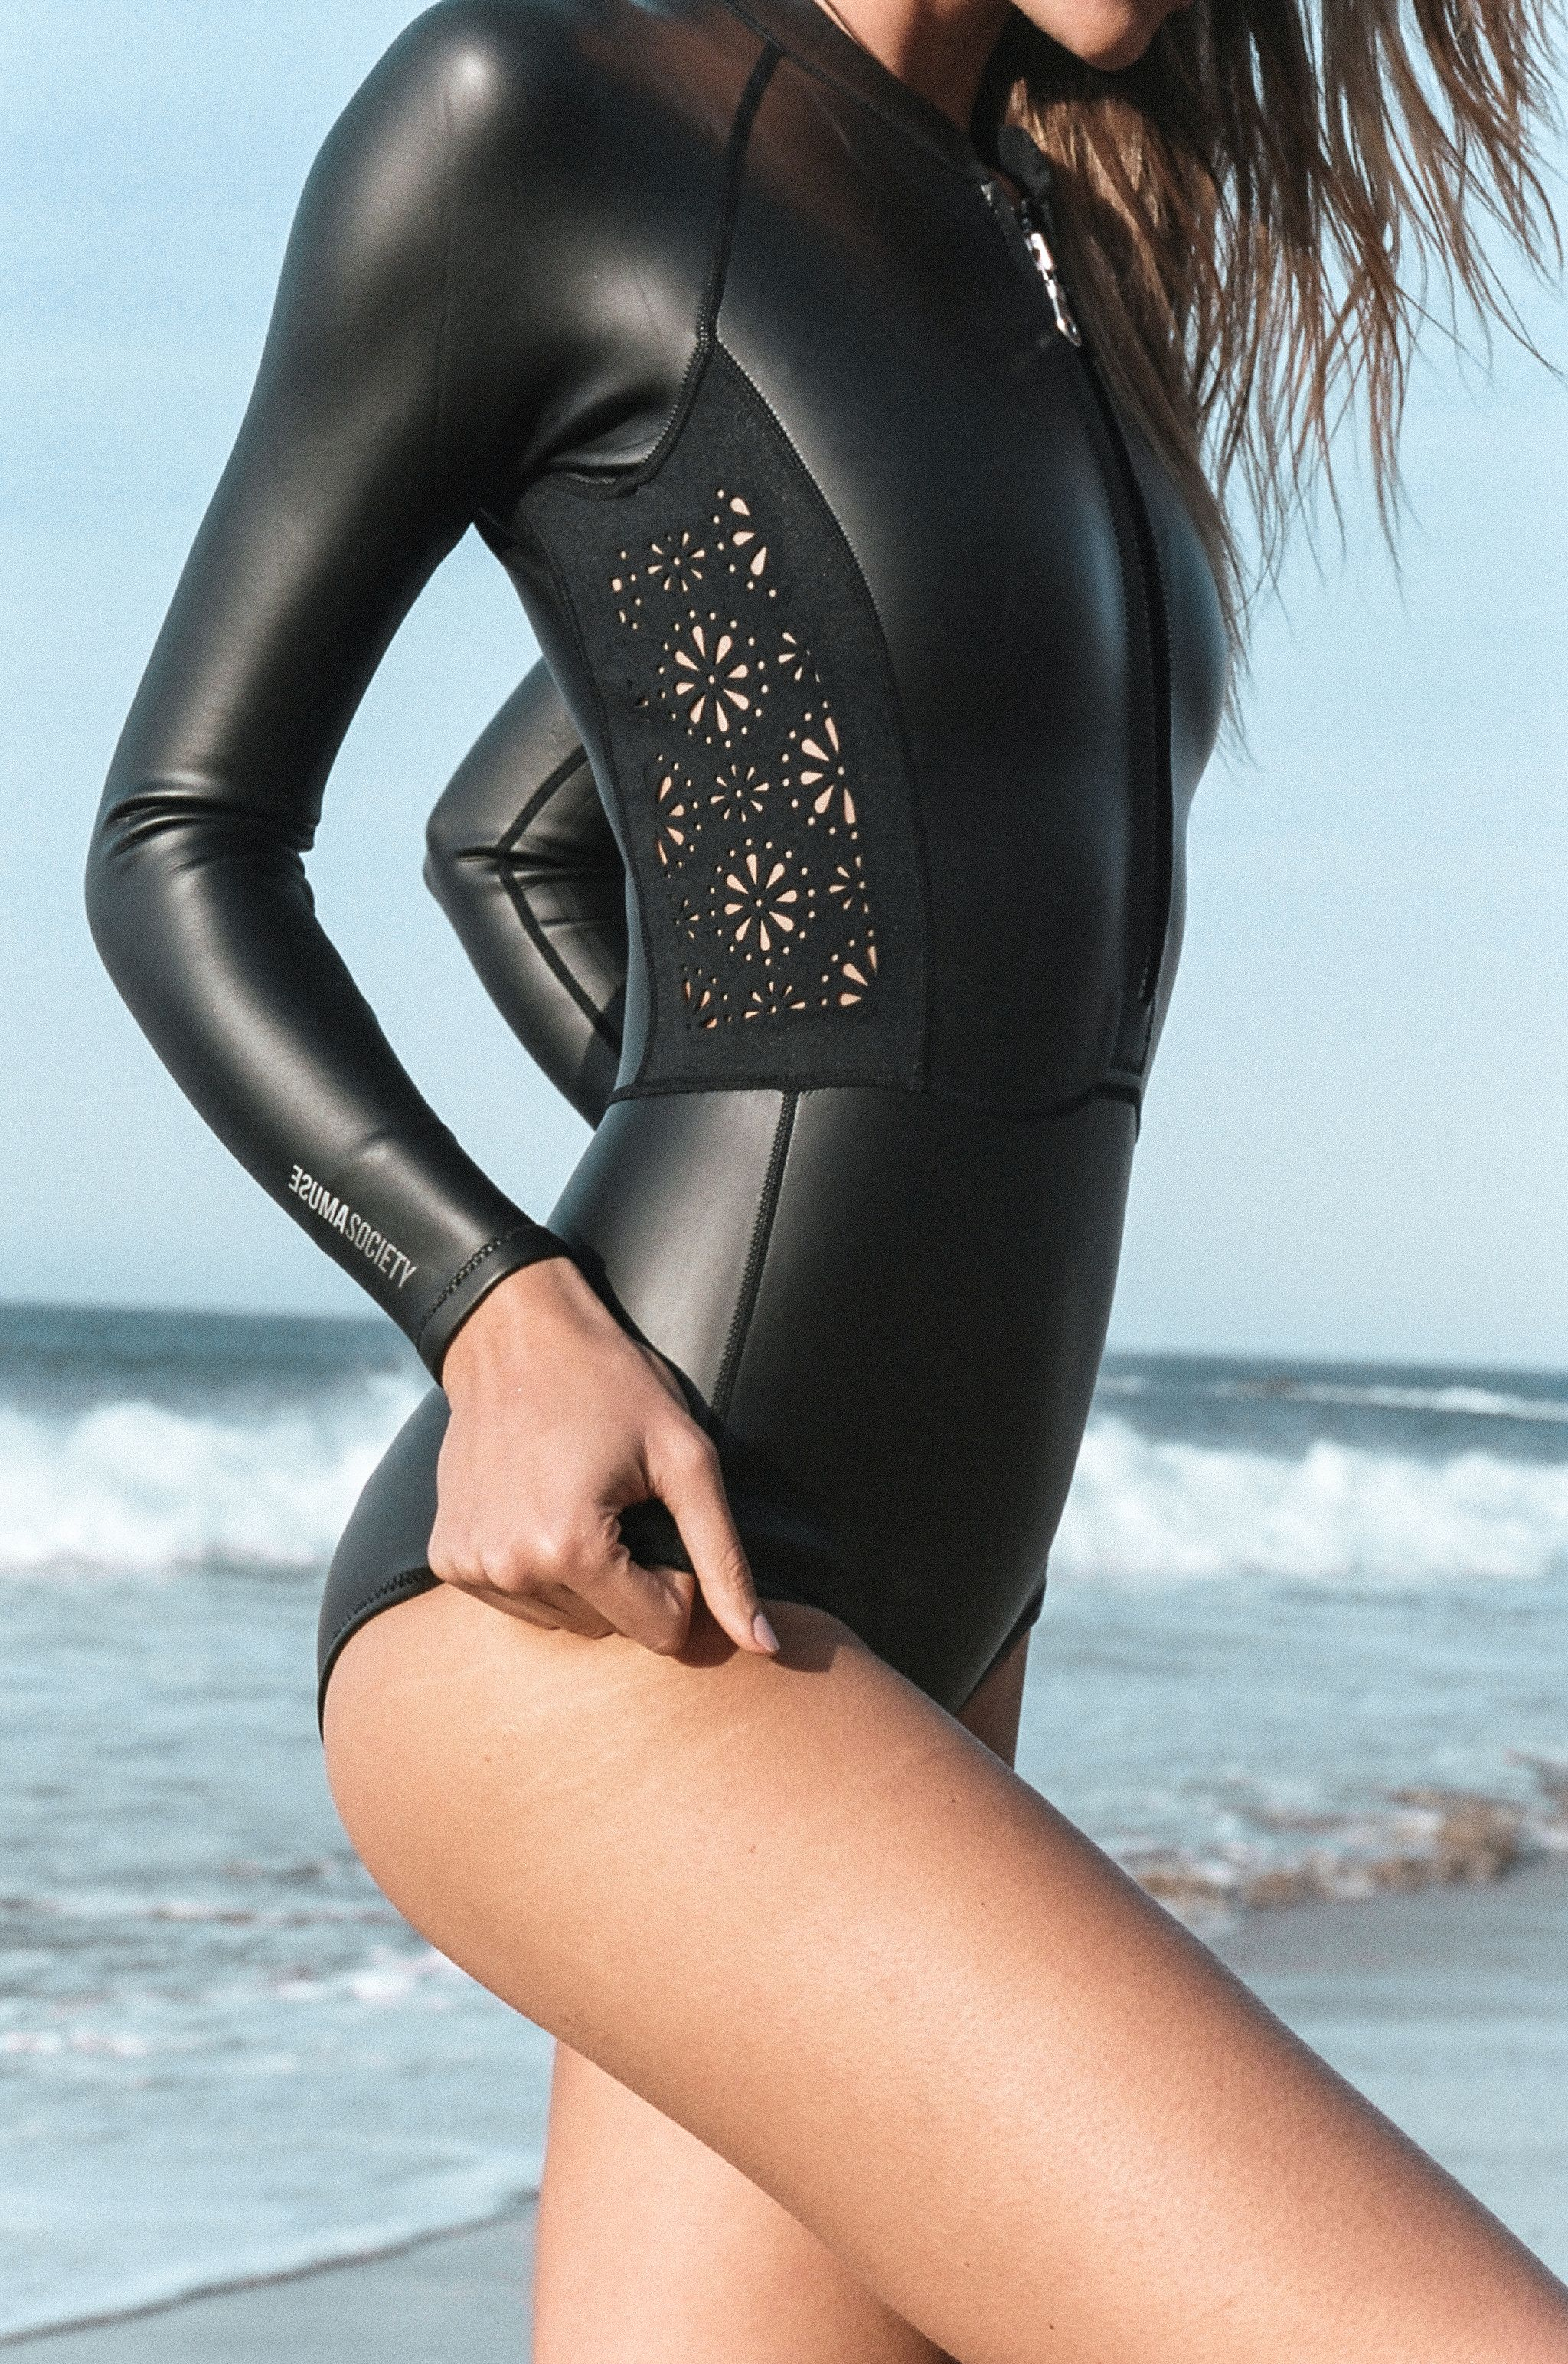 30b8c23103 Do you think my surfing will get better if I wear this   girlzactive ...